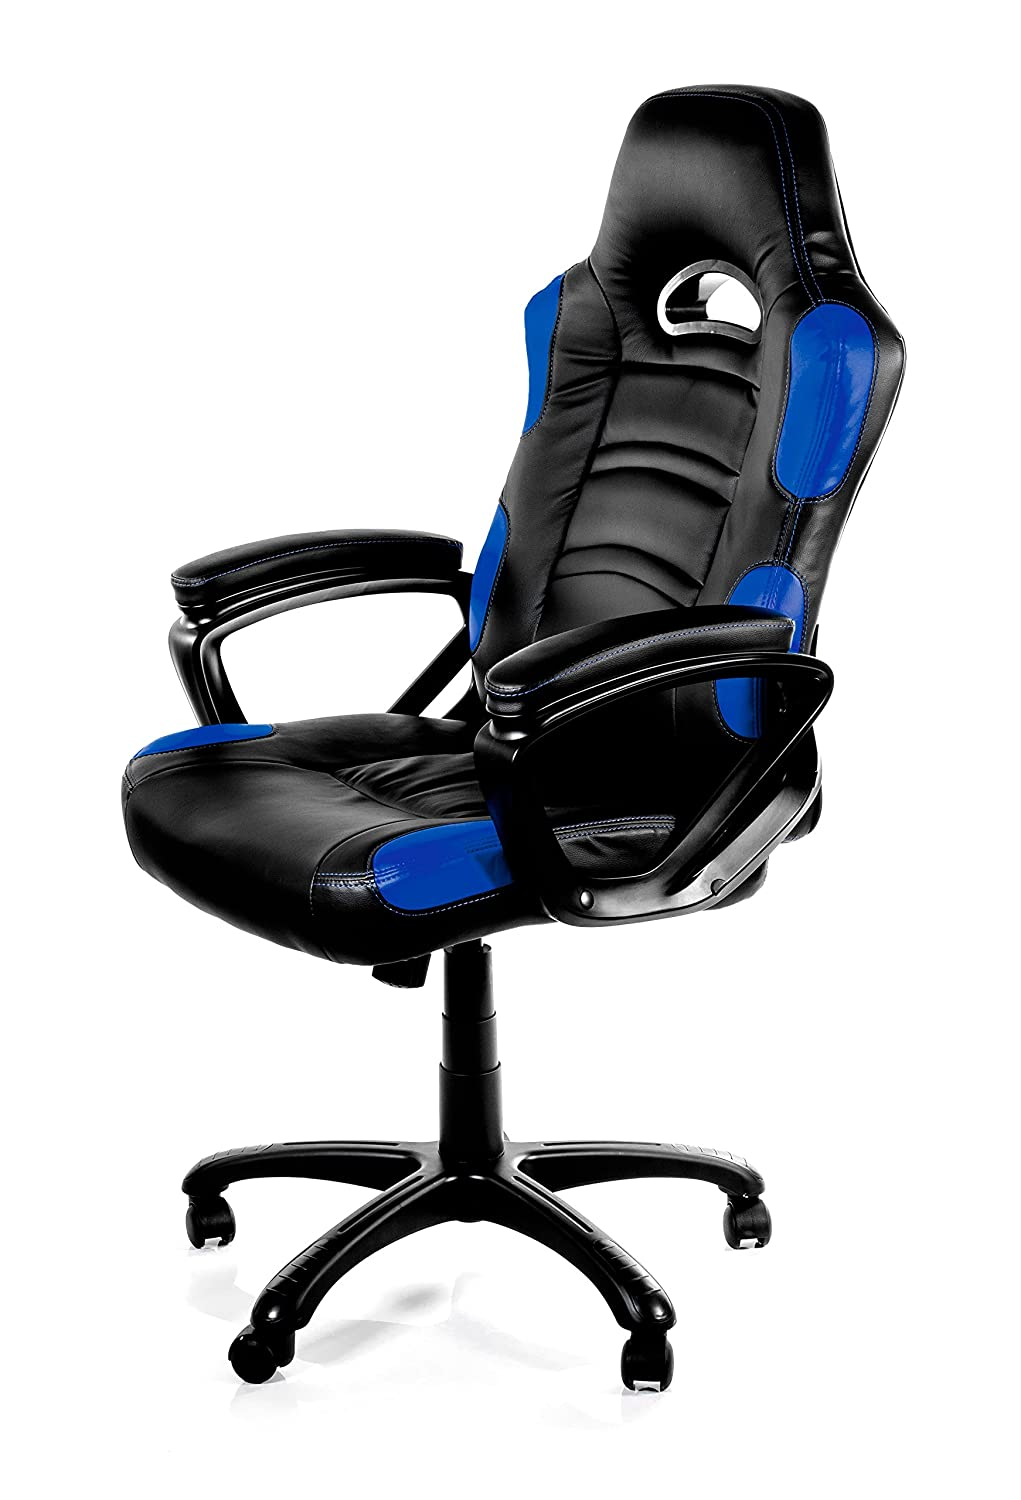 Best computer chair for gaming - Amazon Com Arozzi Enzo Series Gaming Racing Style Swivel Chair Black Blue Kitchen Dining